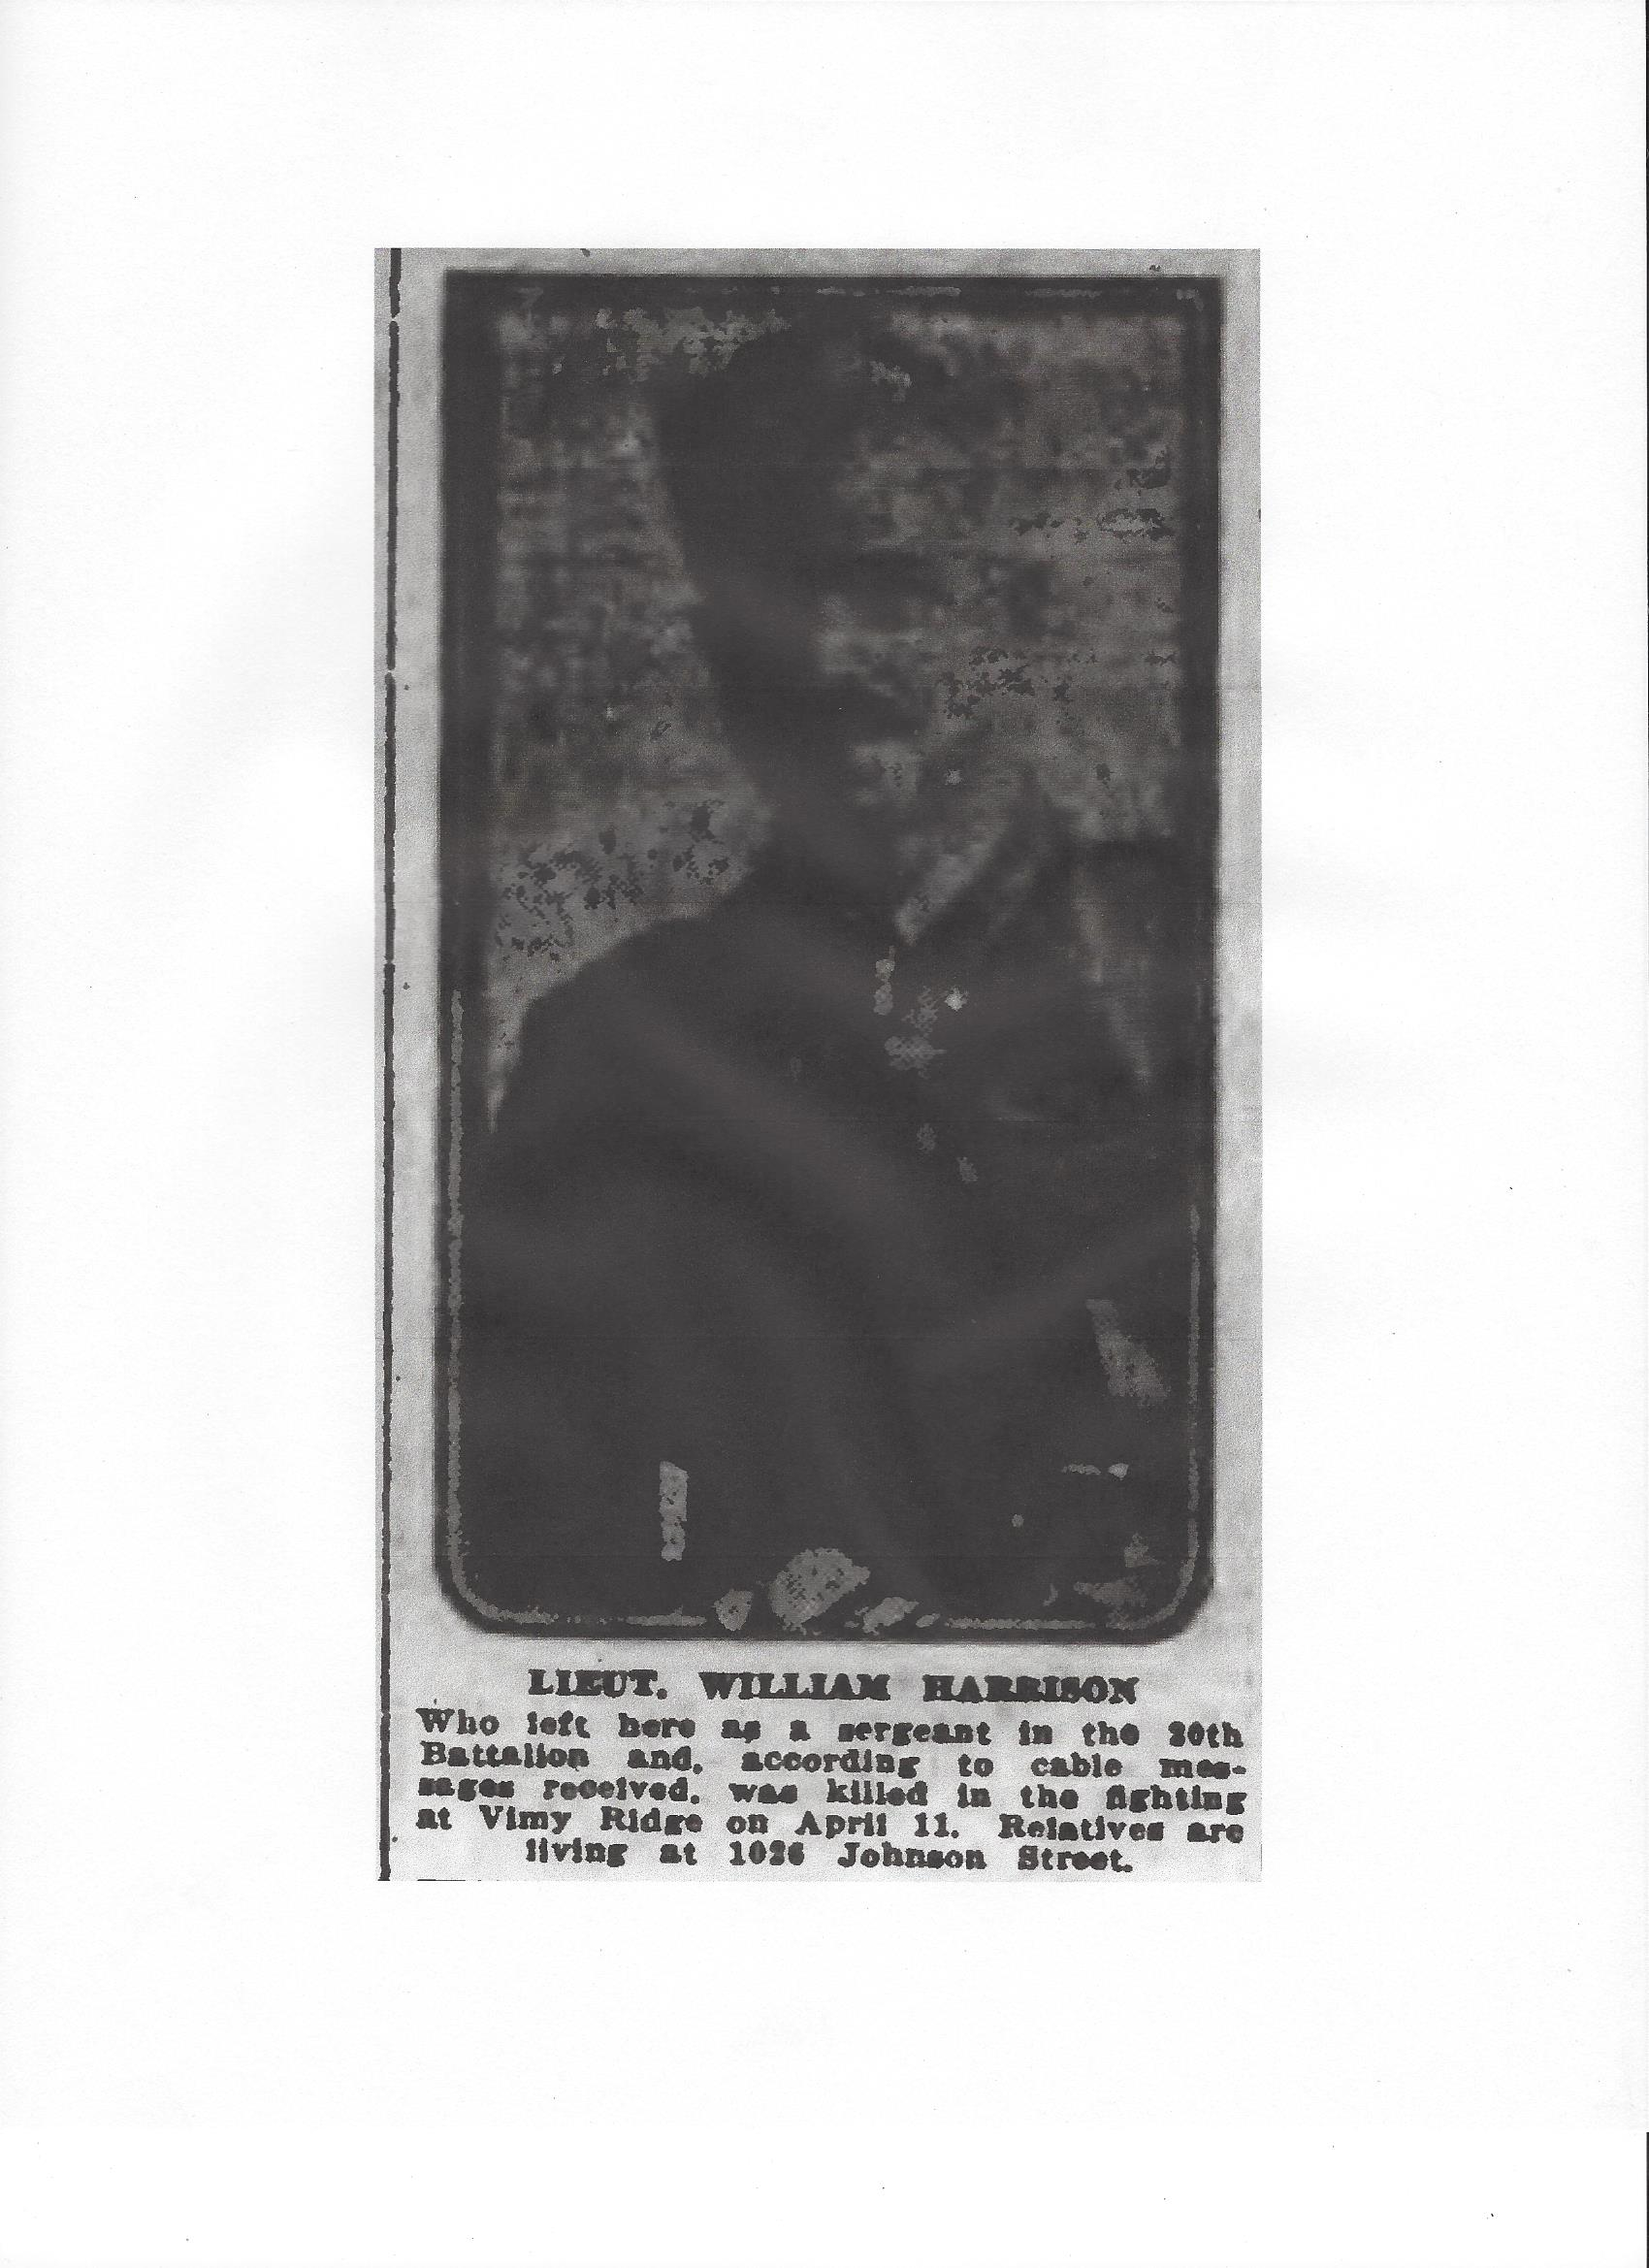 Newspaper Clipping– From the Daily Colonist of April 22, 1917. Image taken from web address of http://archive.org/stream/dailycolonist59y115uvic#page/n0/mode/1up